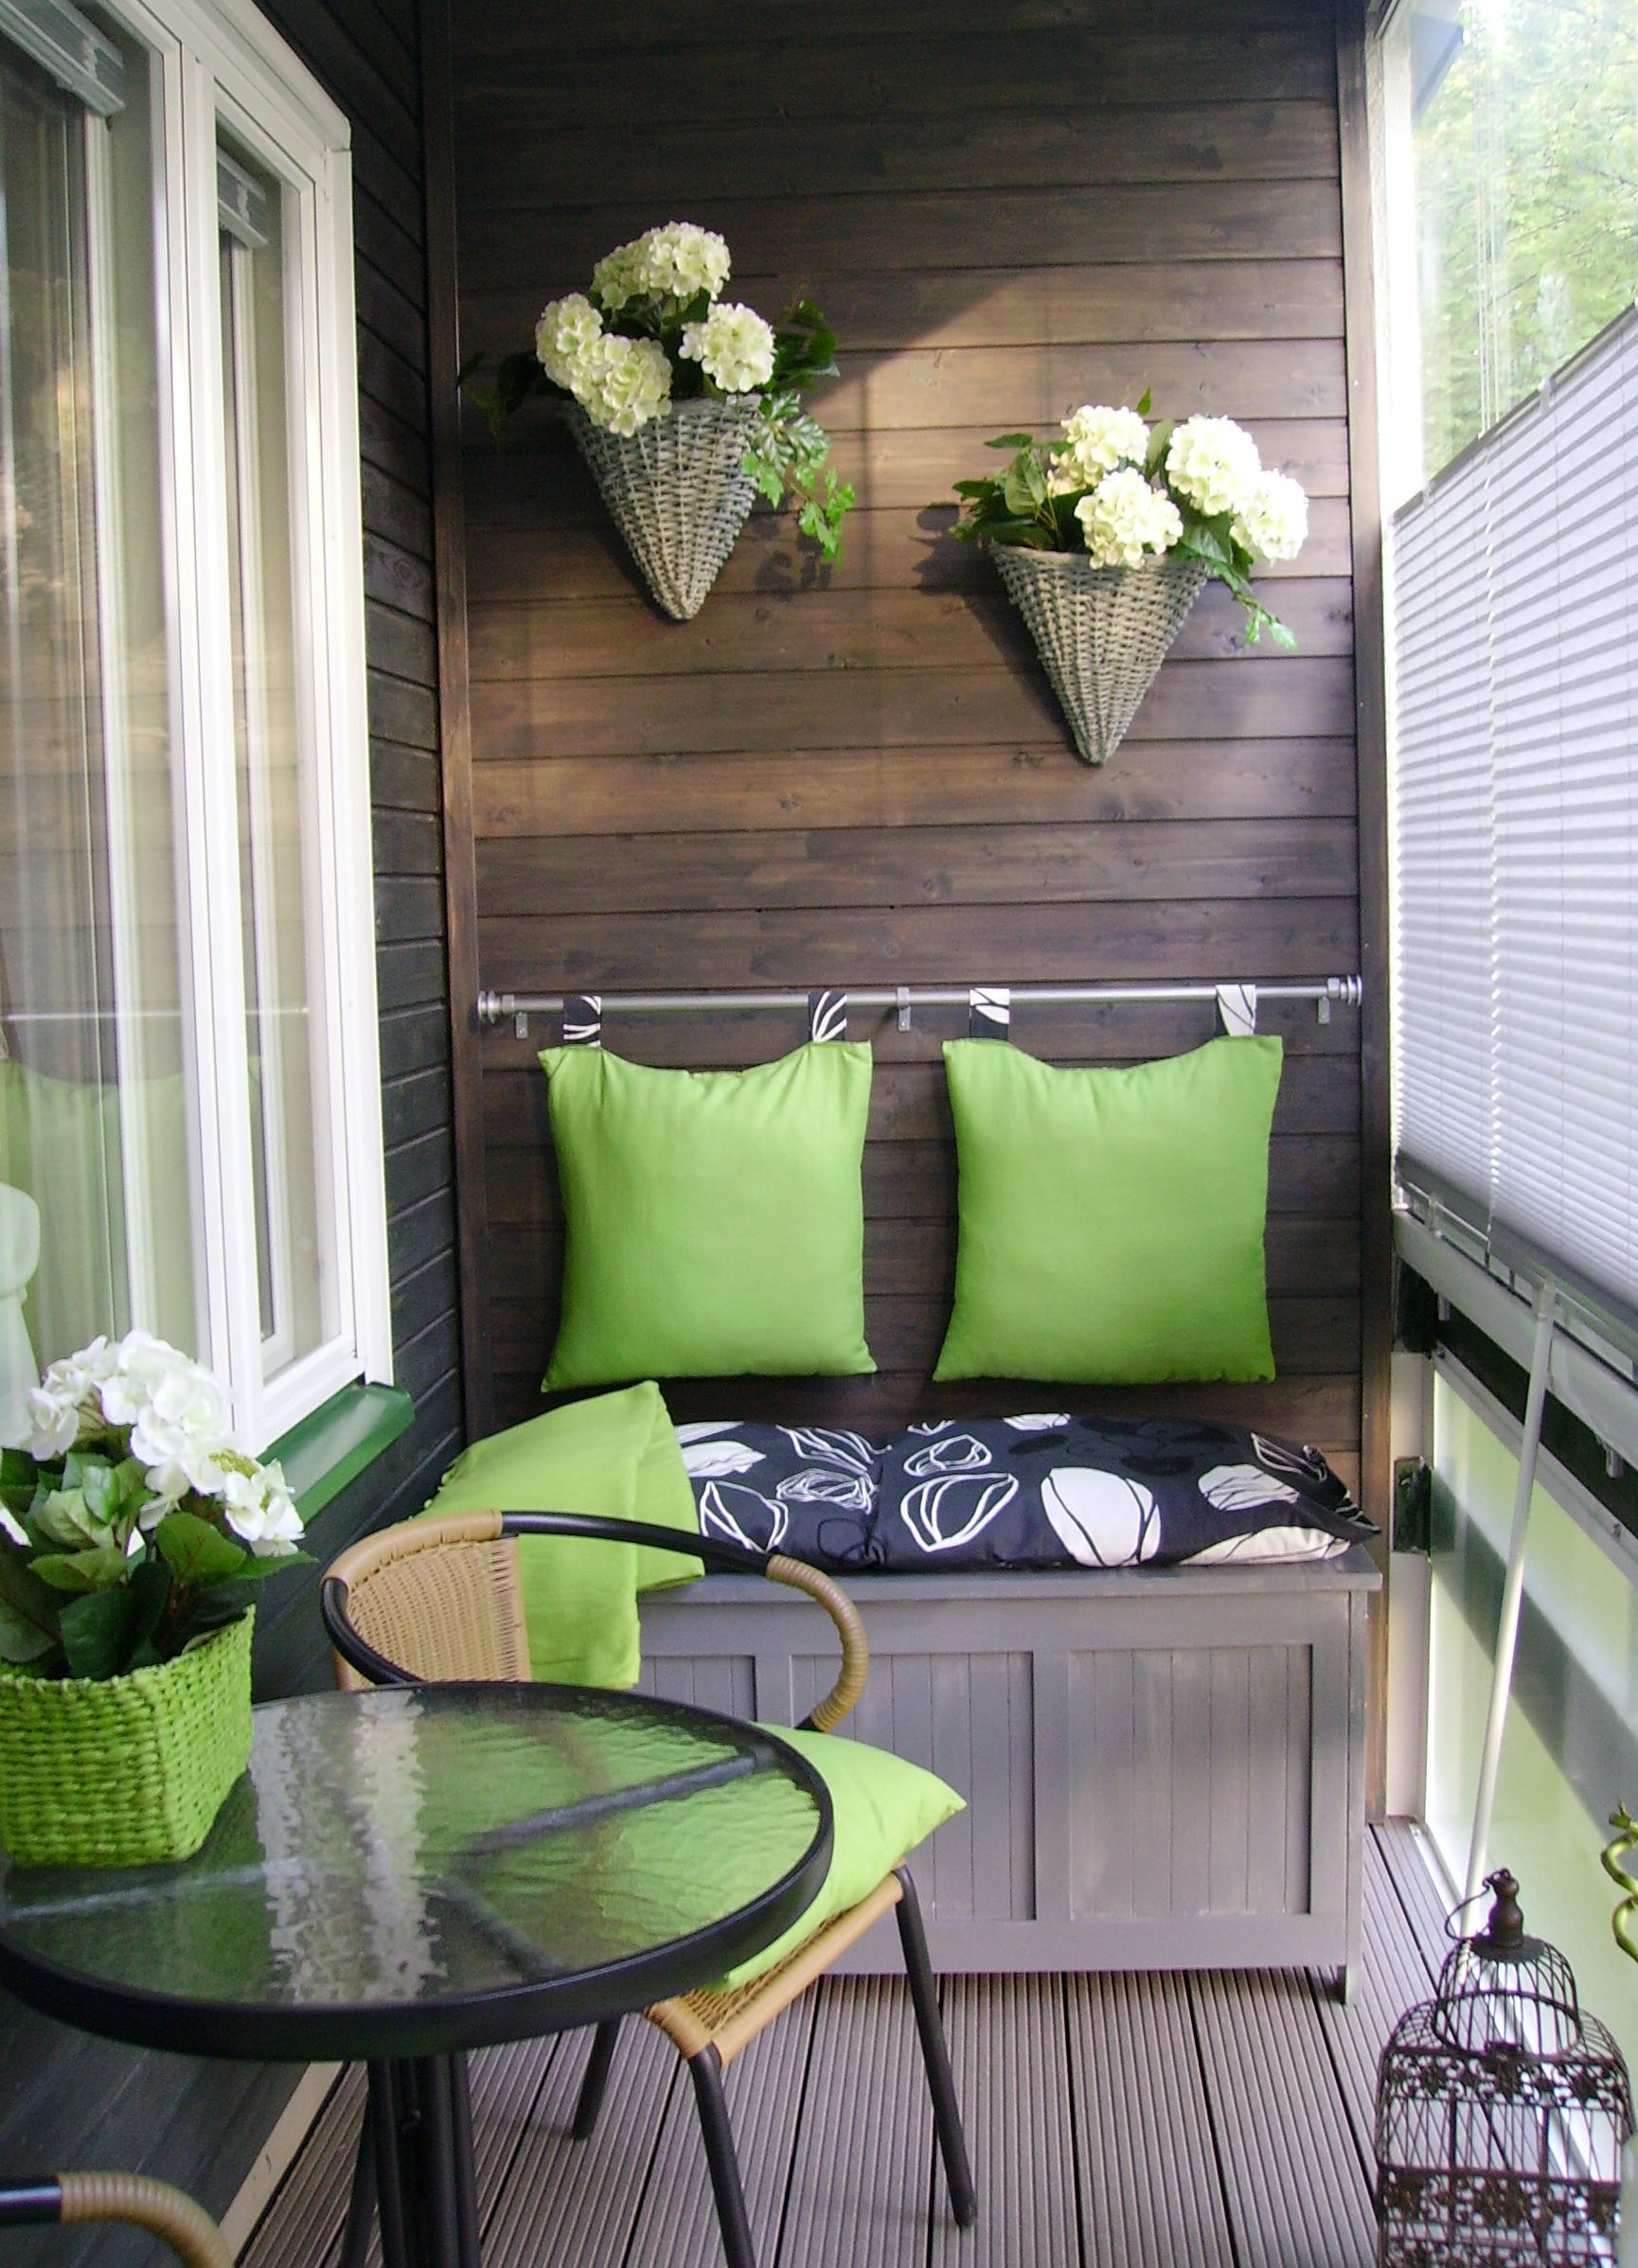 Ideas about balcony decoration design bench gallery weinda.c.